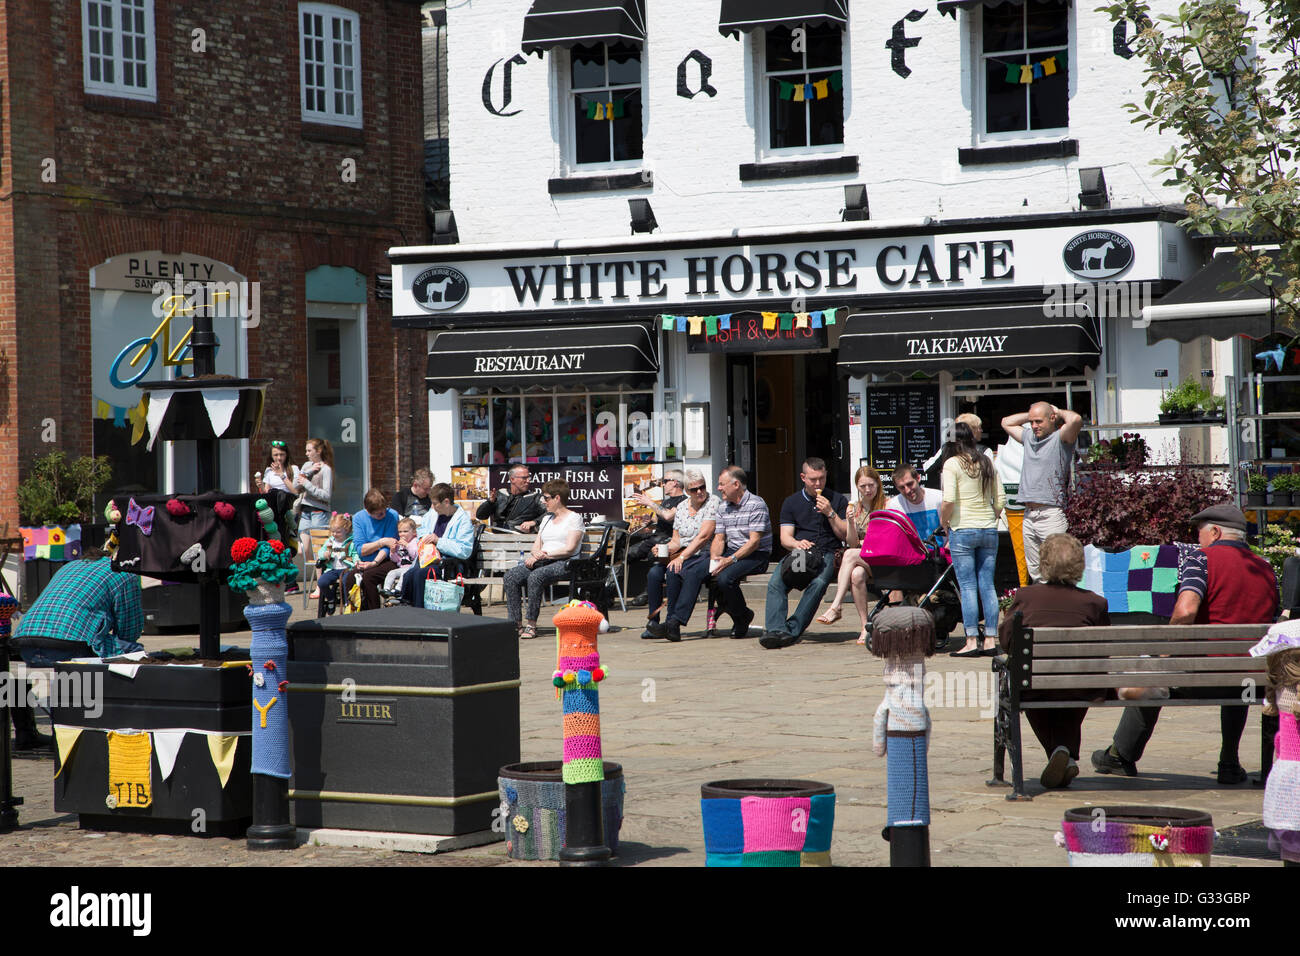 The market square in Thirsk, North Yorkshire in England - Stock Image